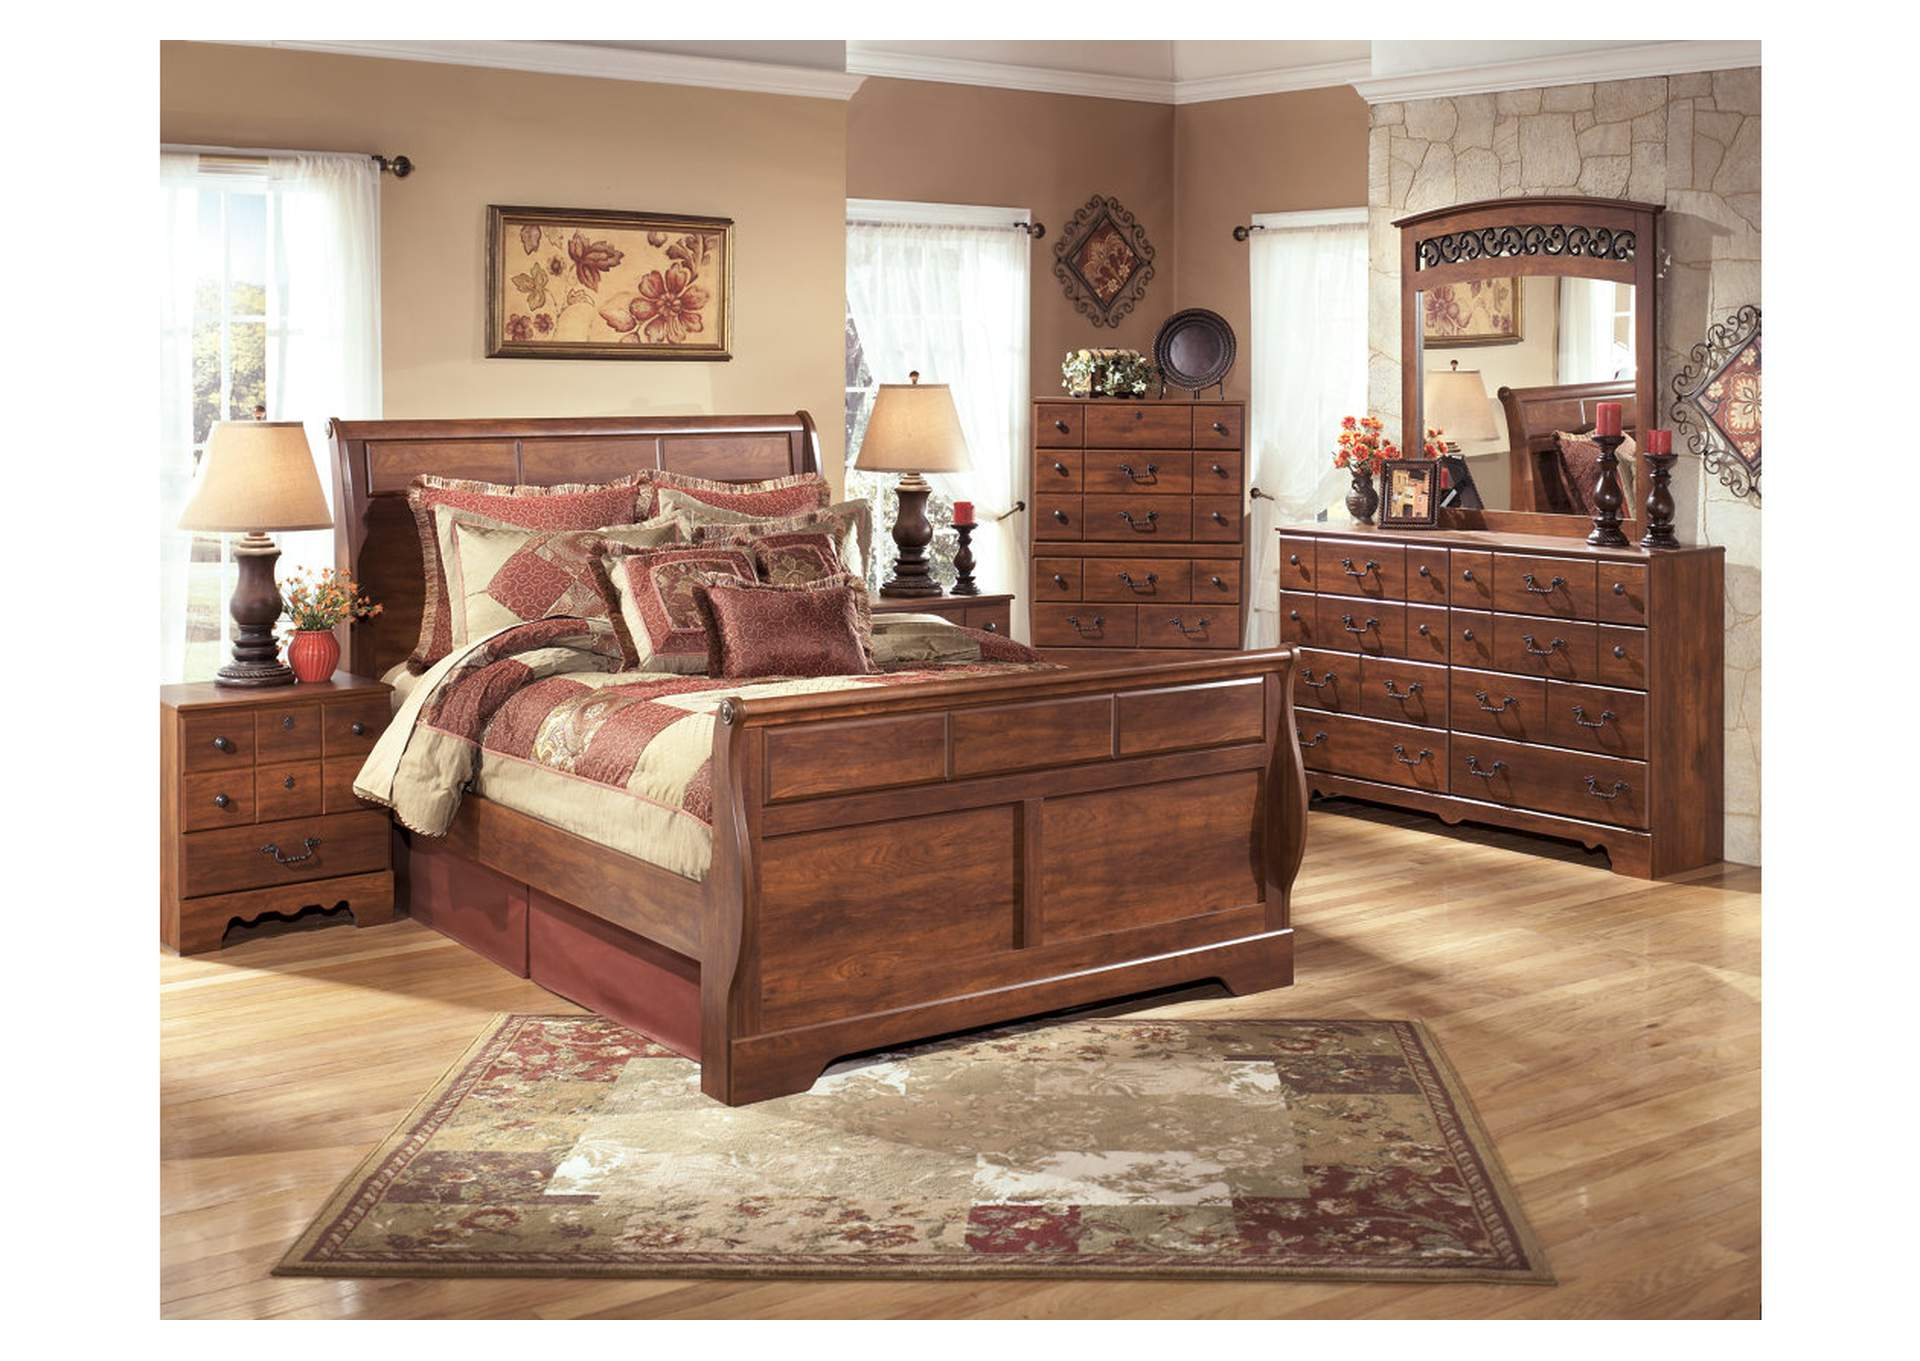 Timberline Queen Sleigh Bed w/Dresser & Mirror,Signature Design By Ashley